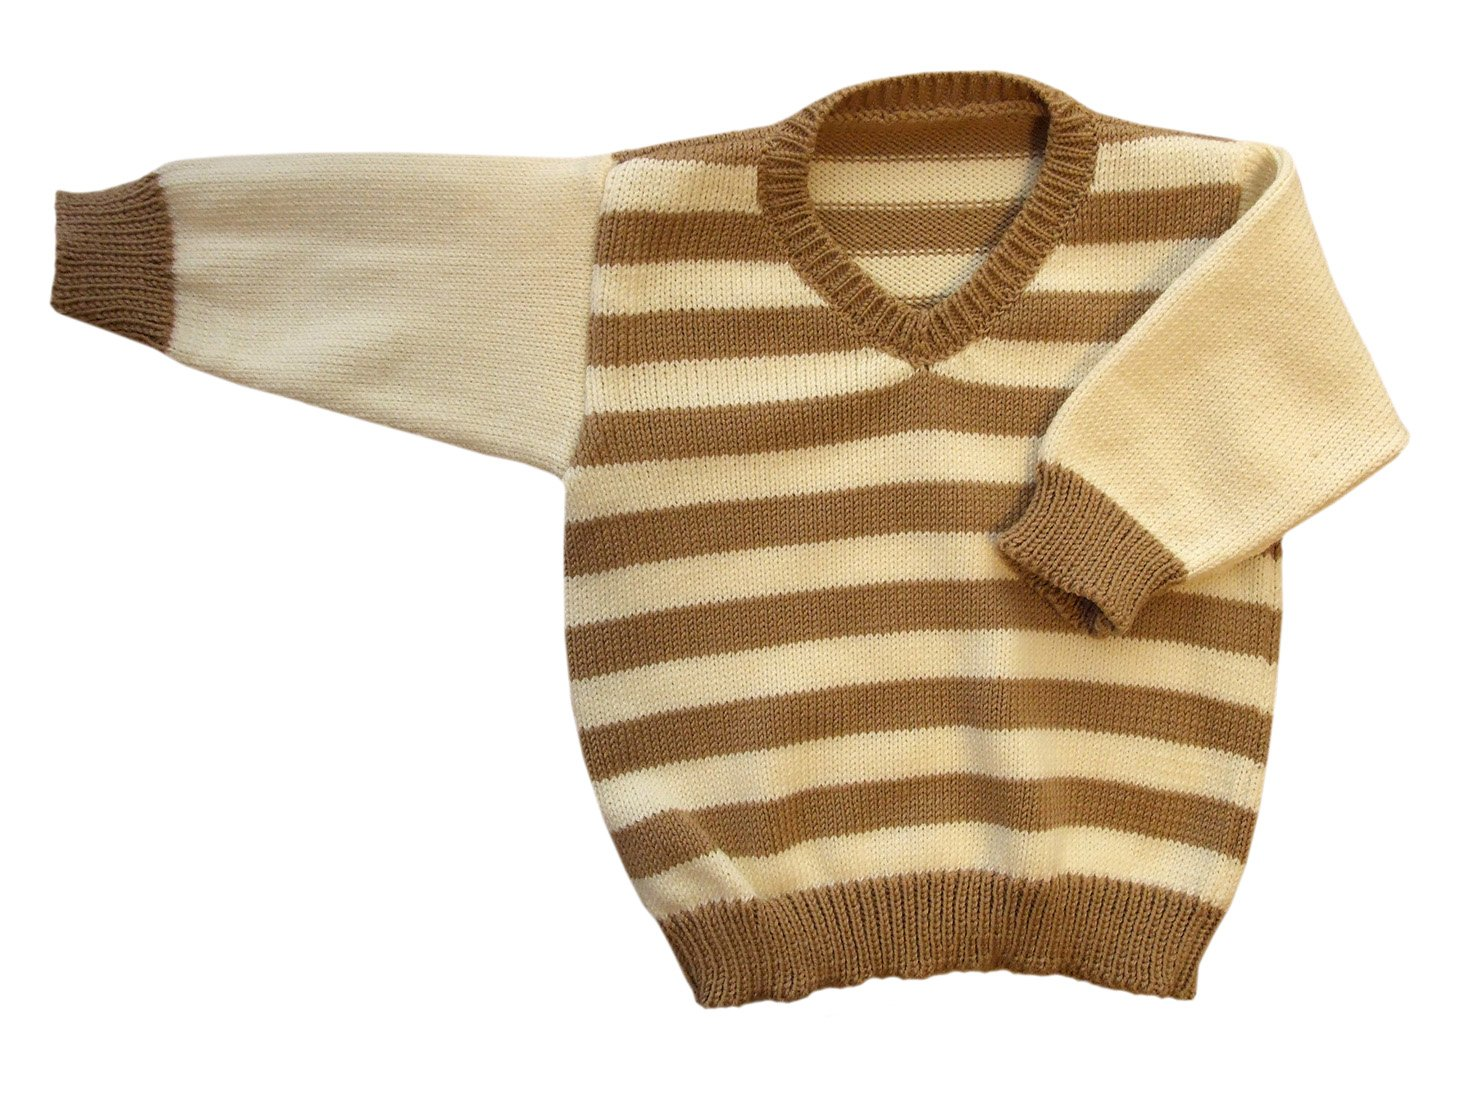 100% merino wool baby infant knitted sweater striped (1-6 mo, Brown-Natural white) by tevirP